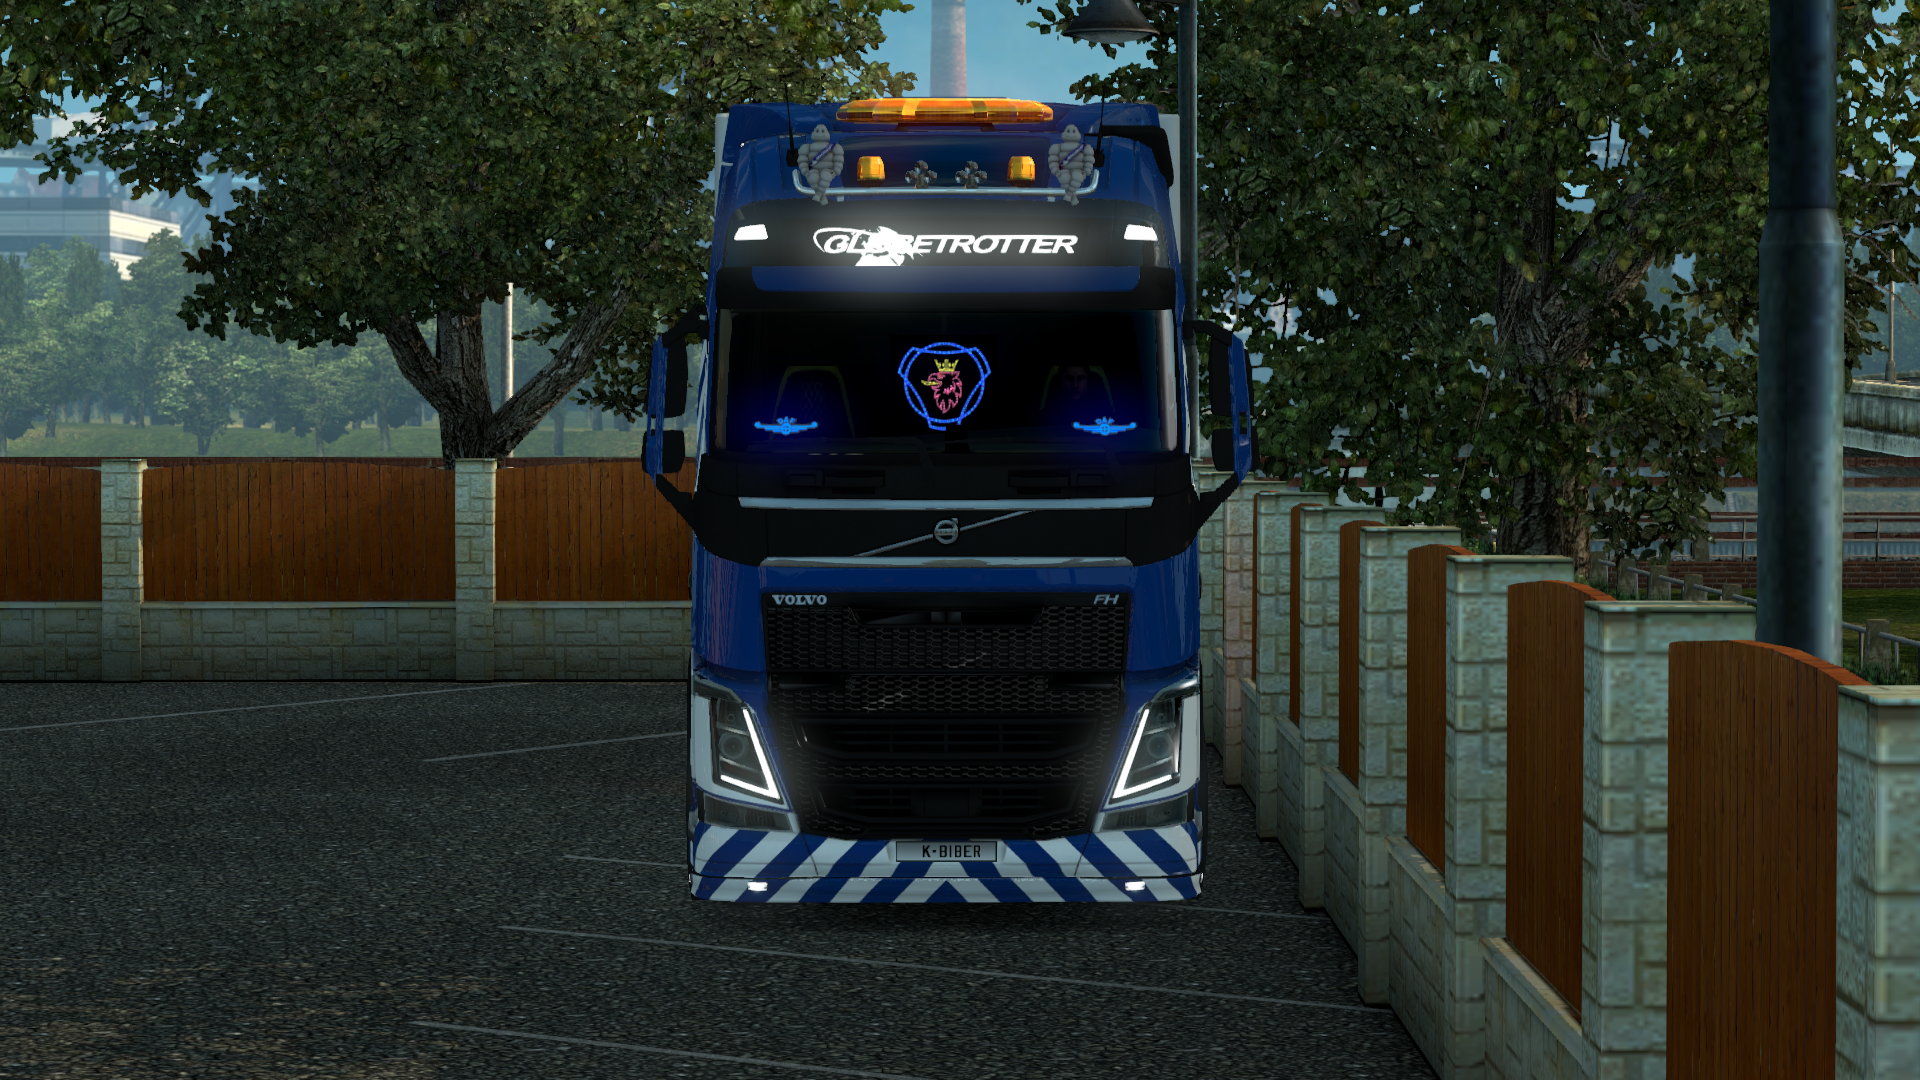 ets2_20180810_033705_00.png